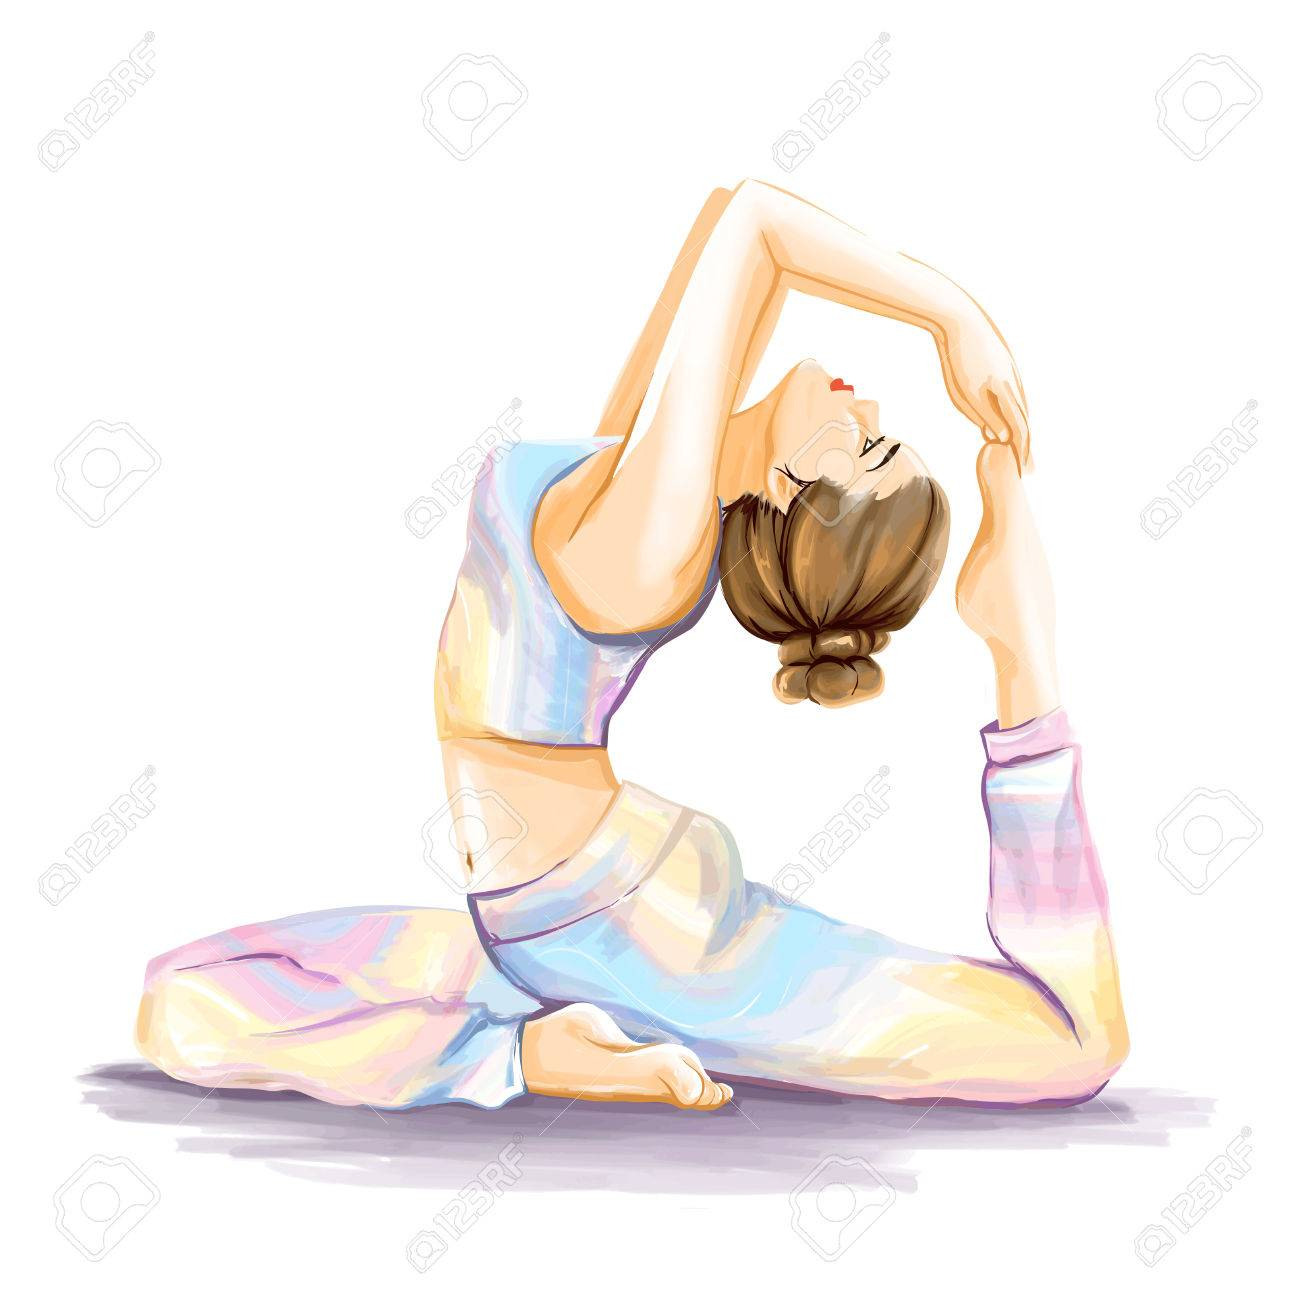 Young Flexy Sports Girl Does Yoga Exercise For Improvement Of